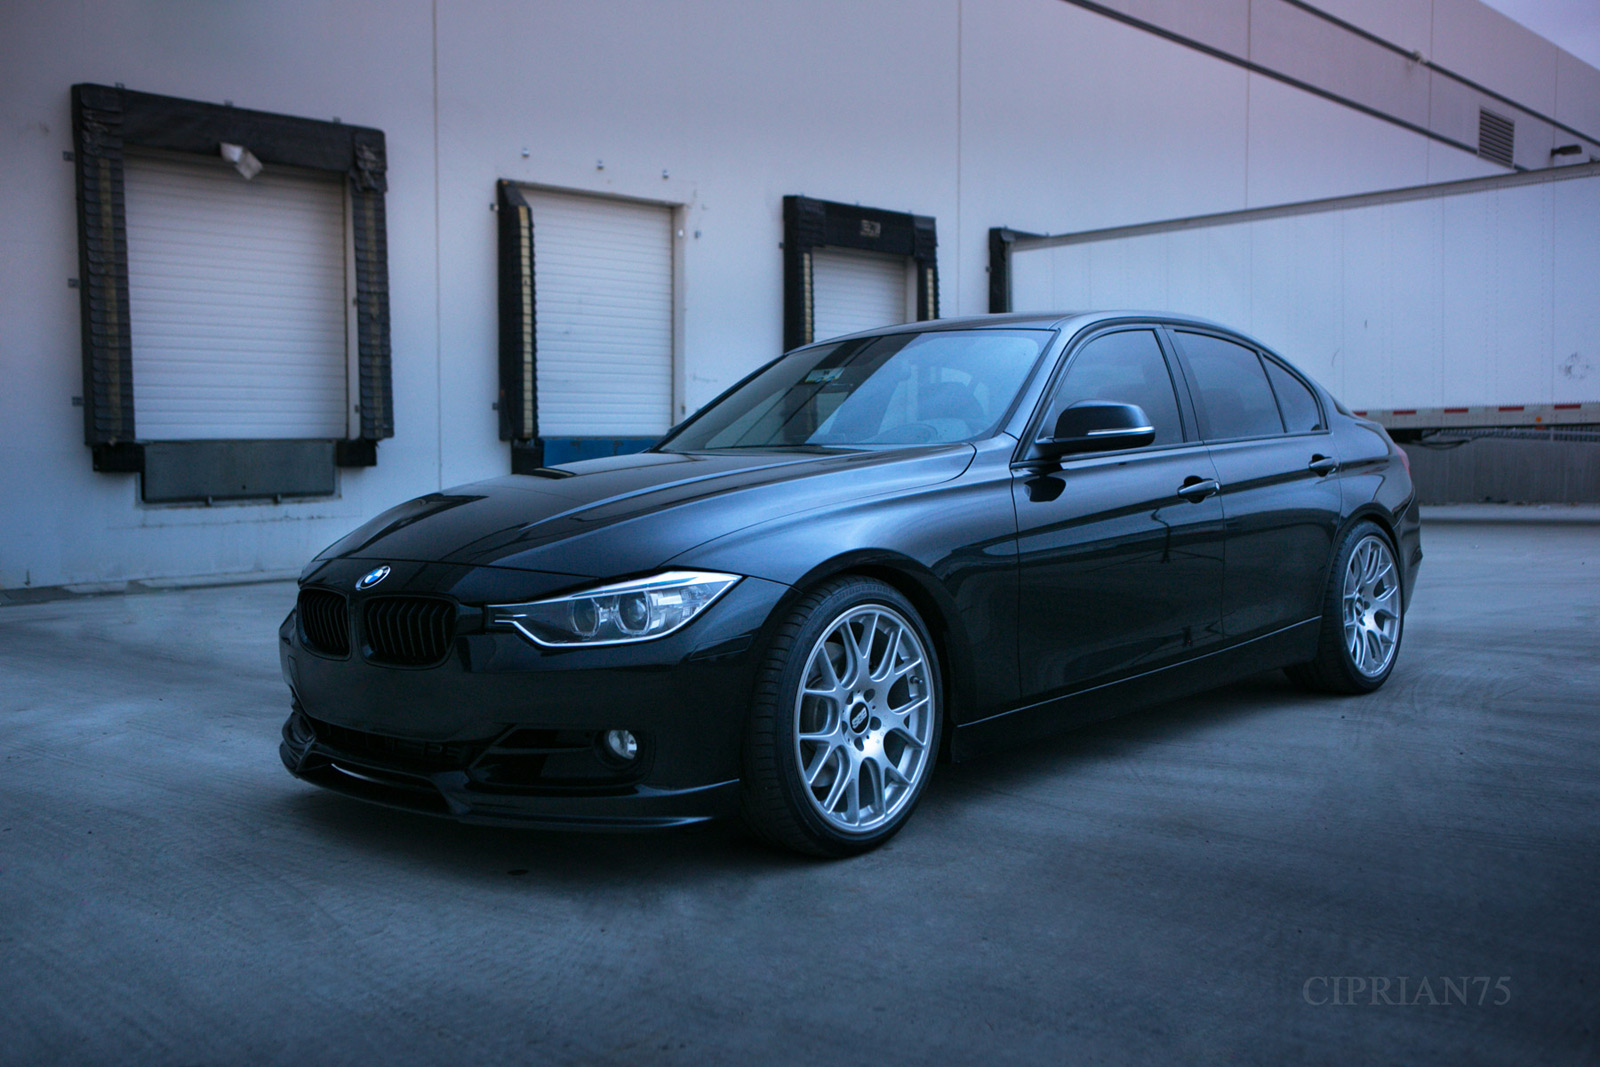 F30 335 With Bbs Ch R